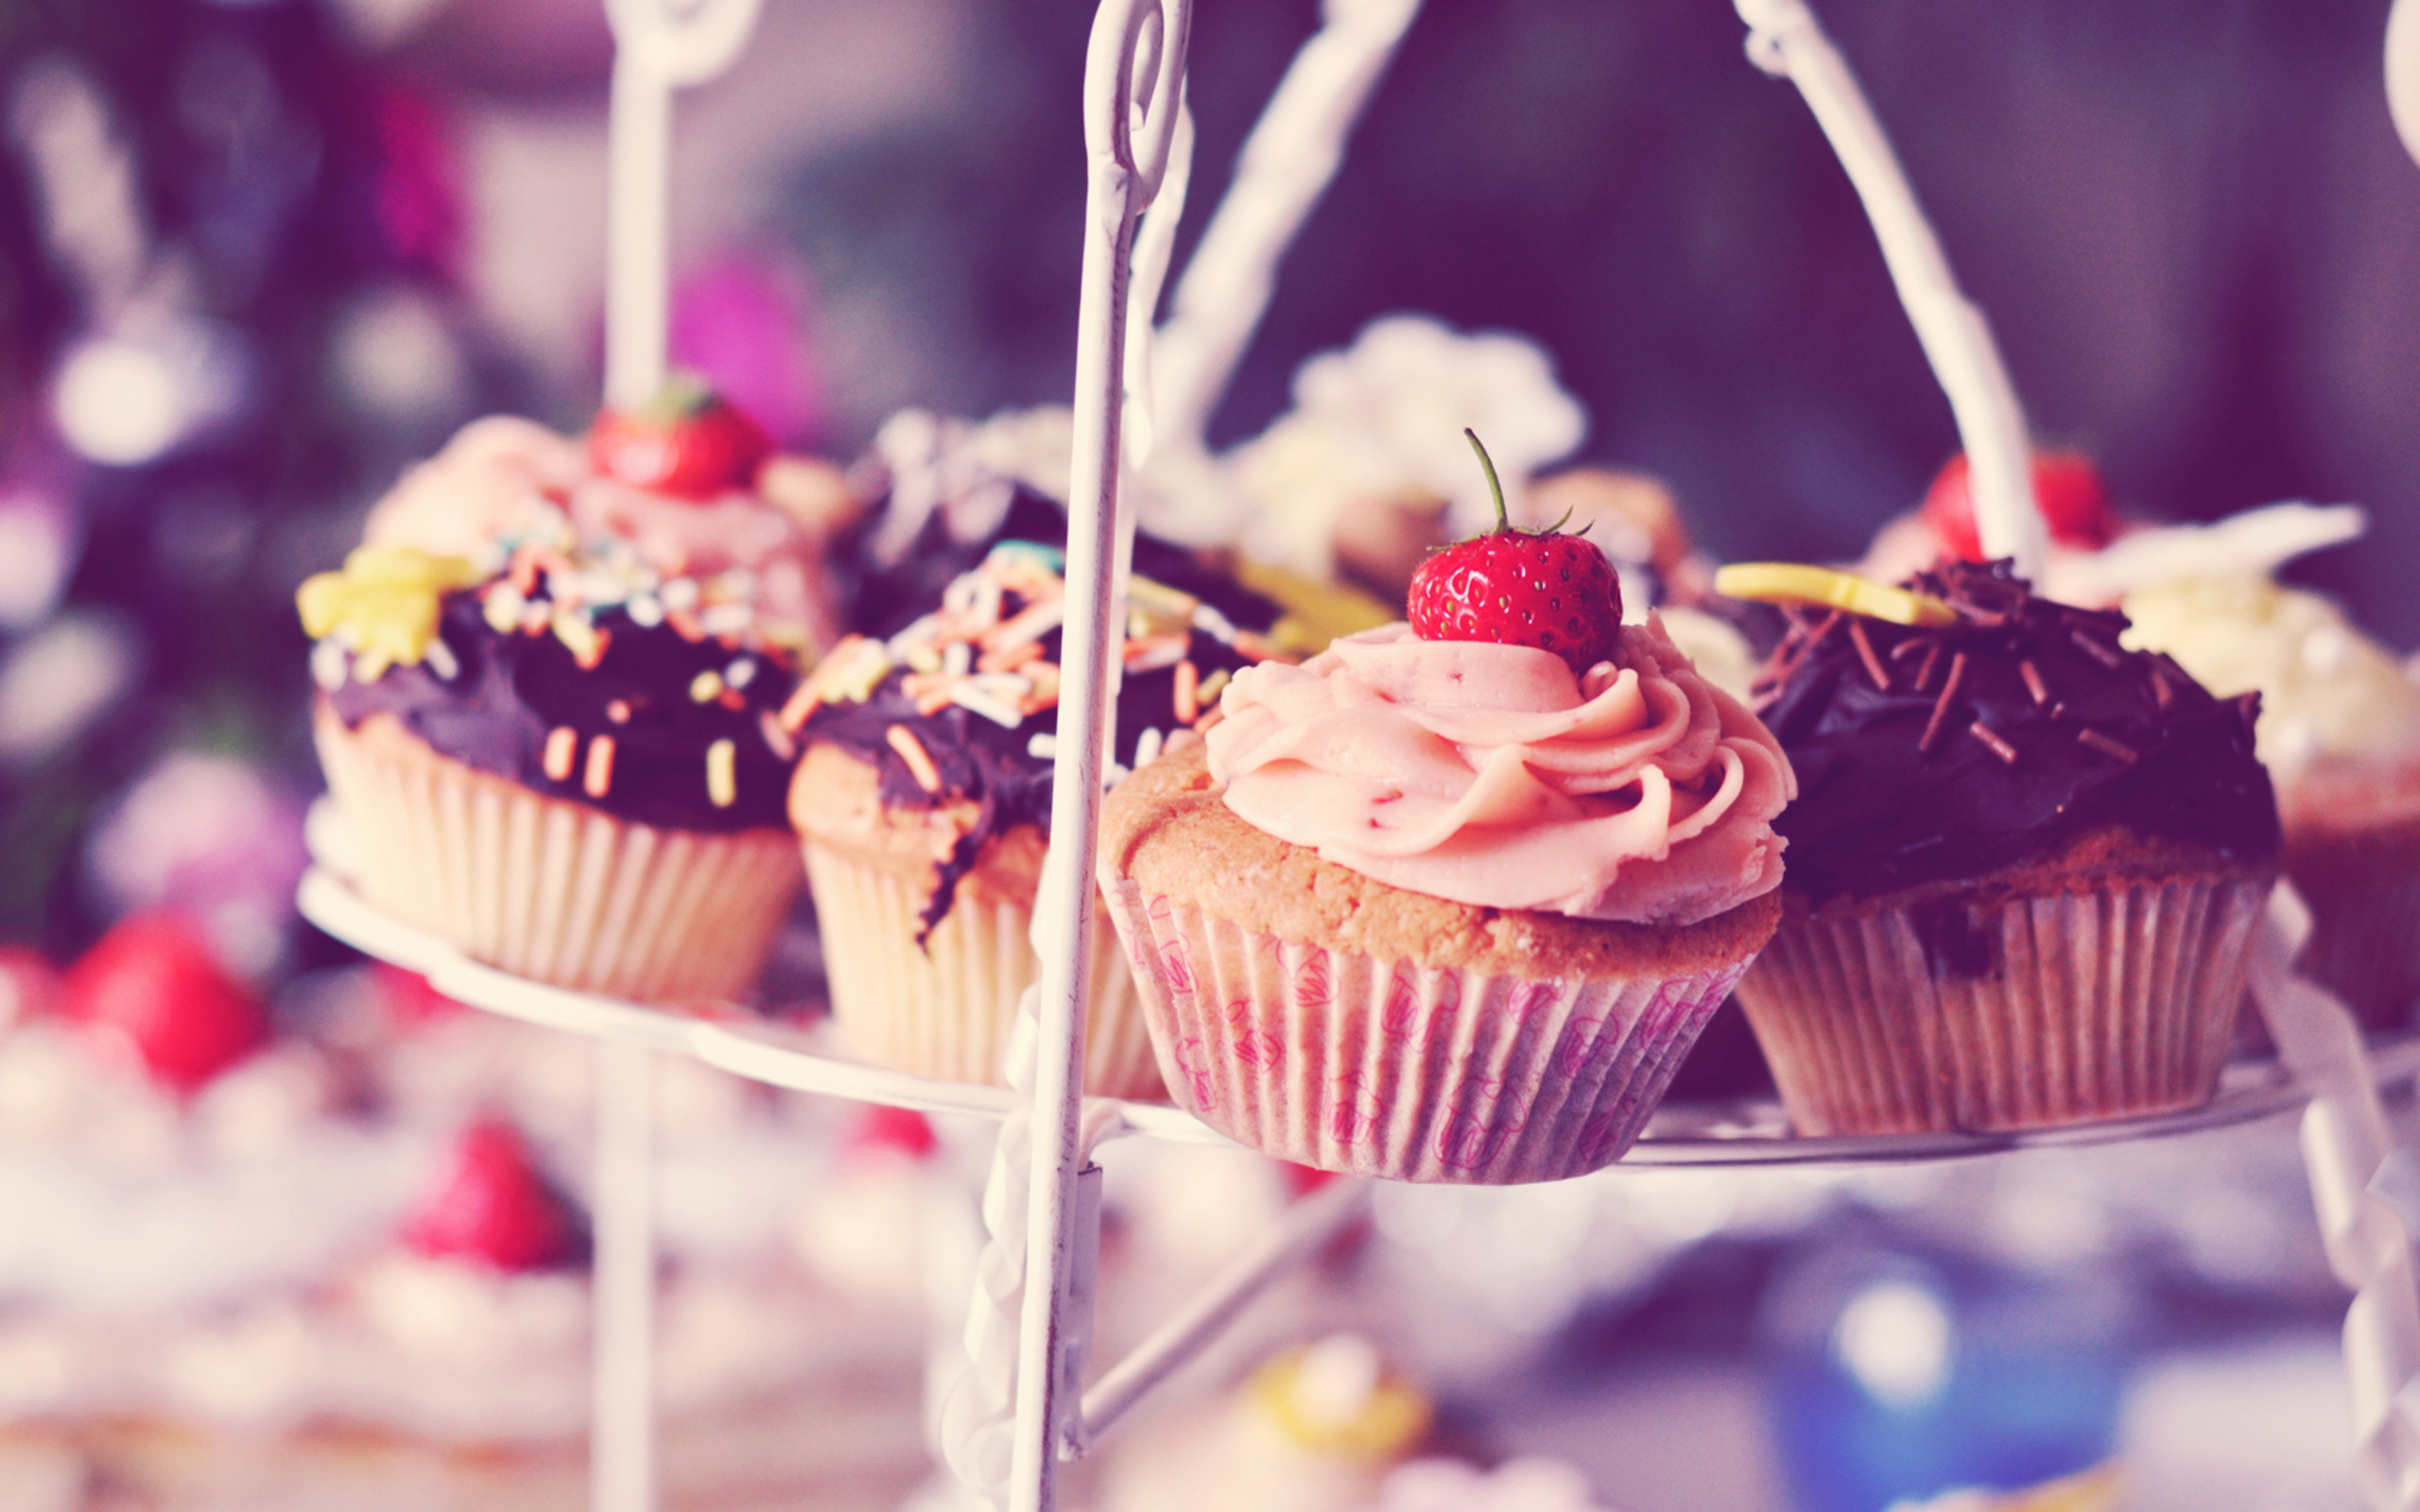 download hd love cupcake wallpapers for your desktop, iphone and android